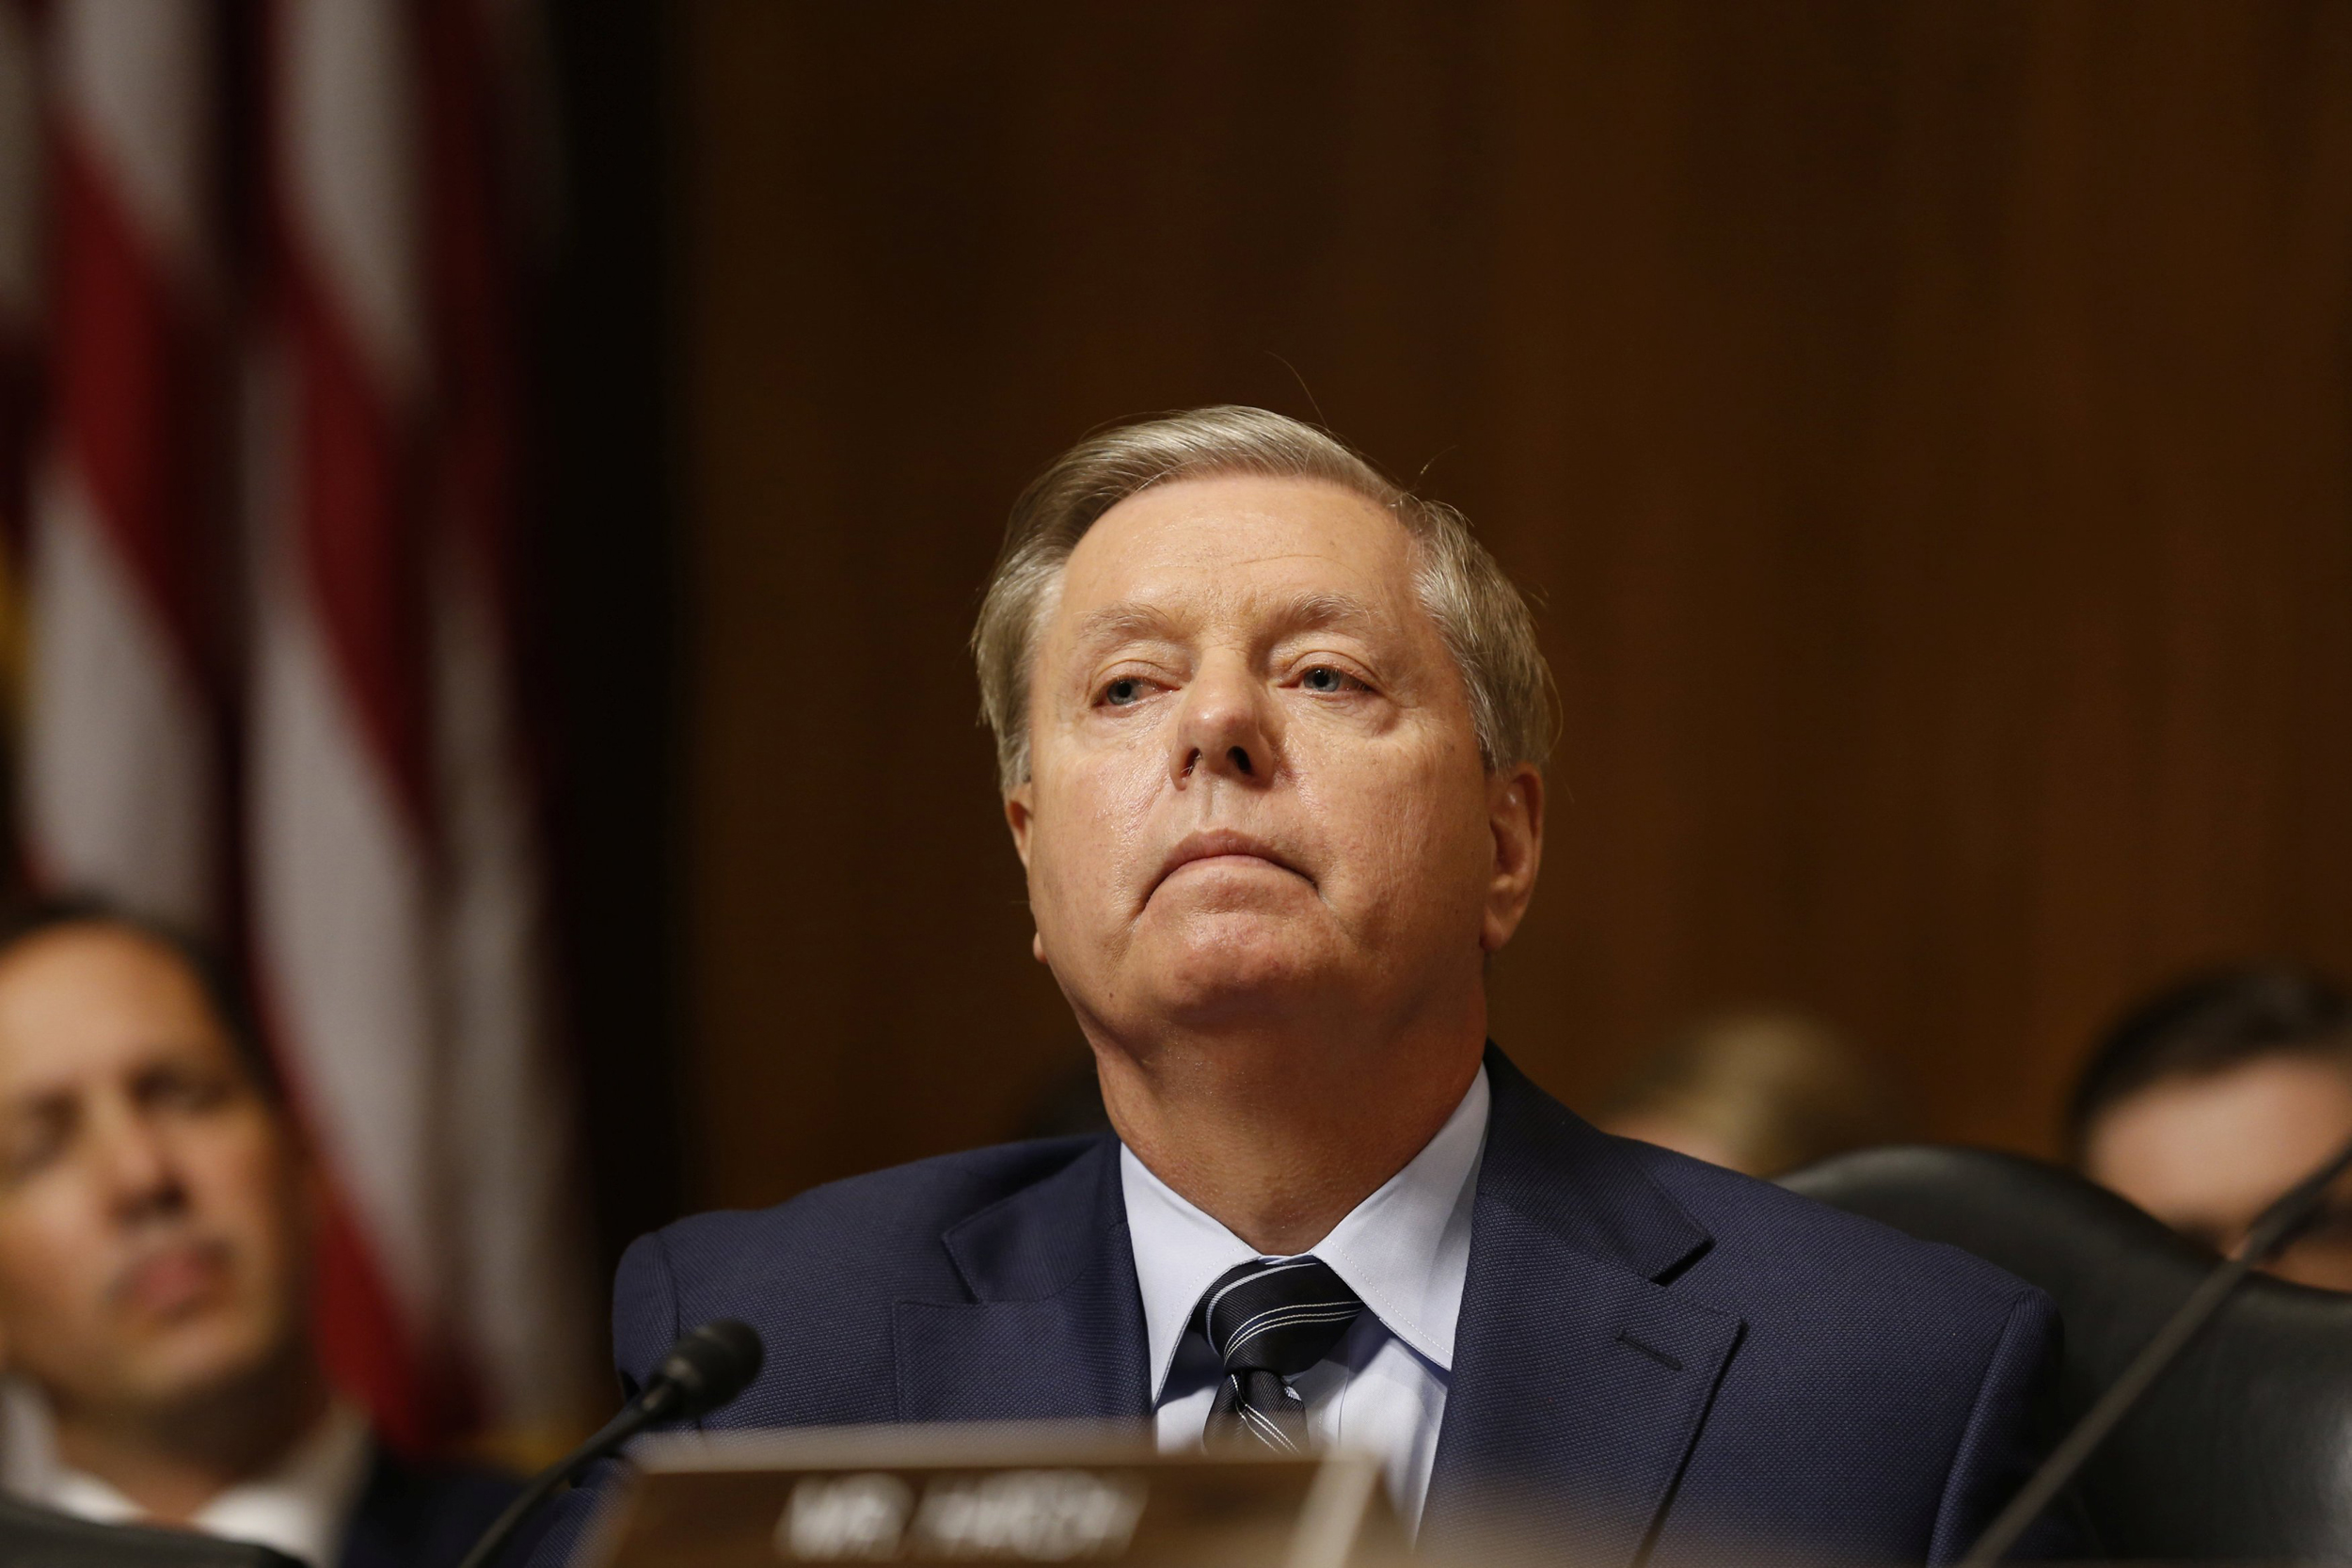 Graham wants another investigation — into how Democrats handled Ford's accusations